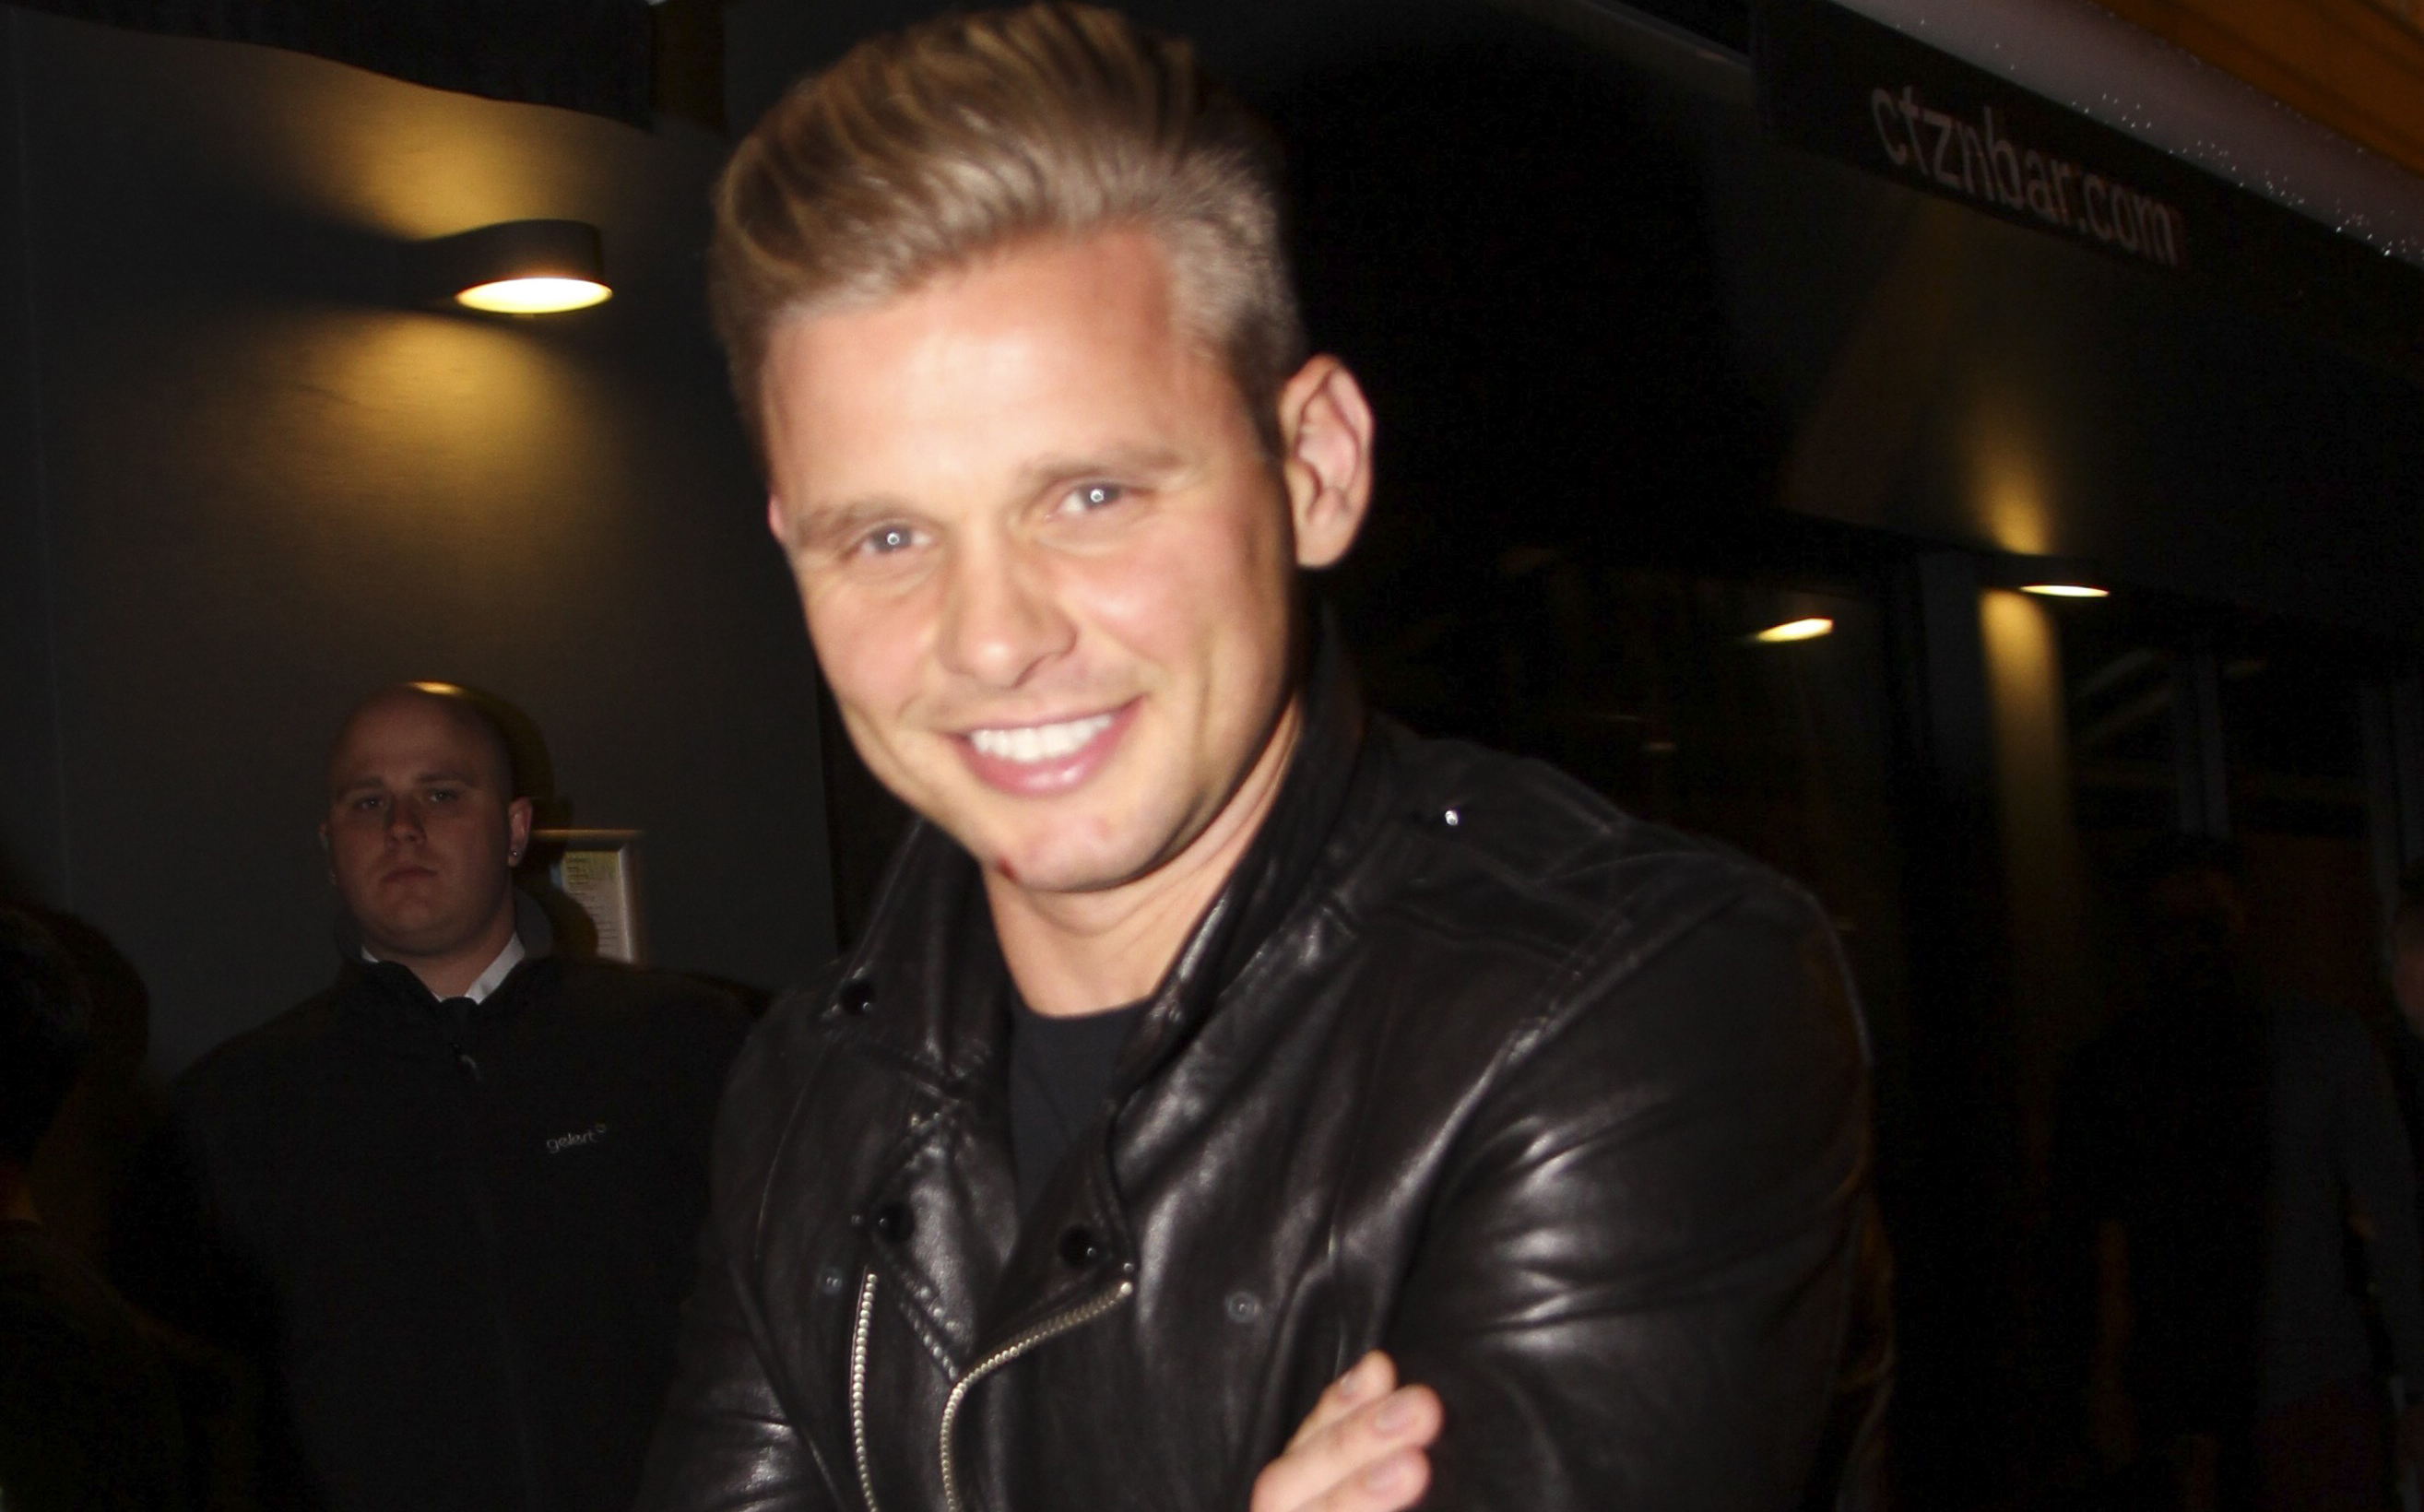 Jeff Brazier vows to shape up after 'chubby' joke